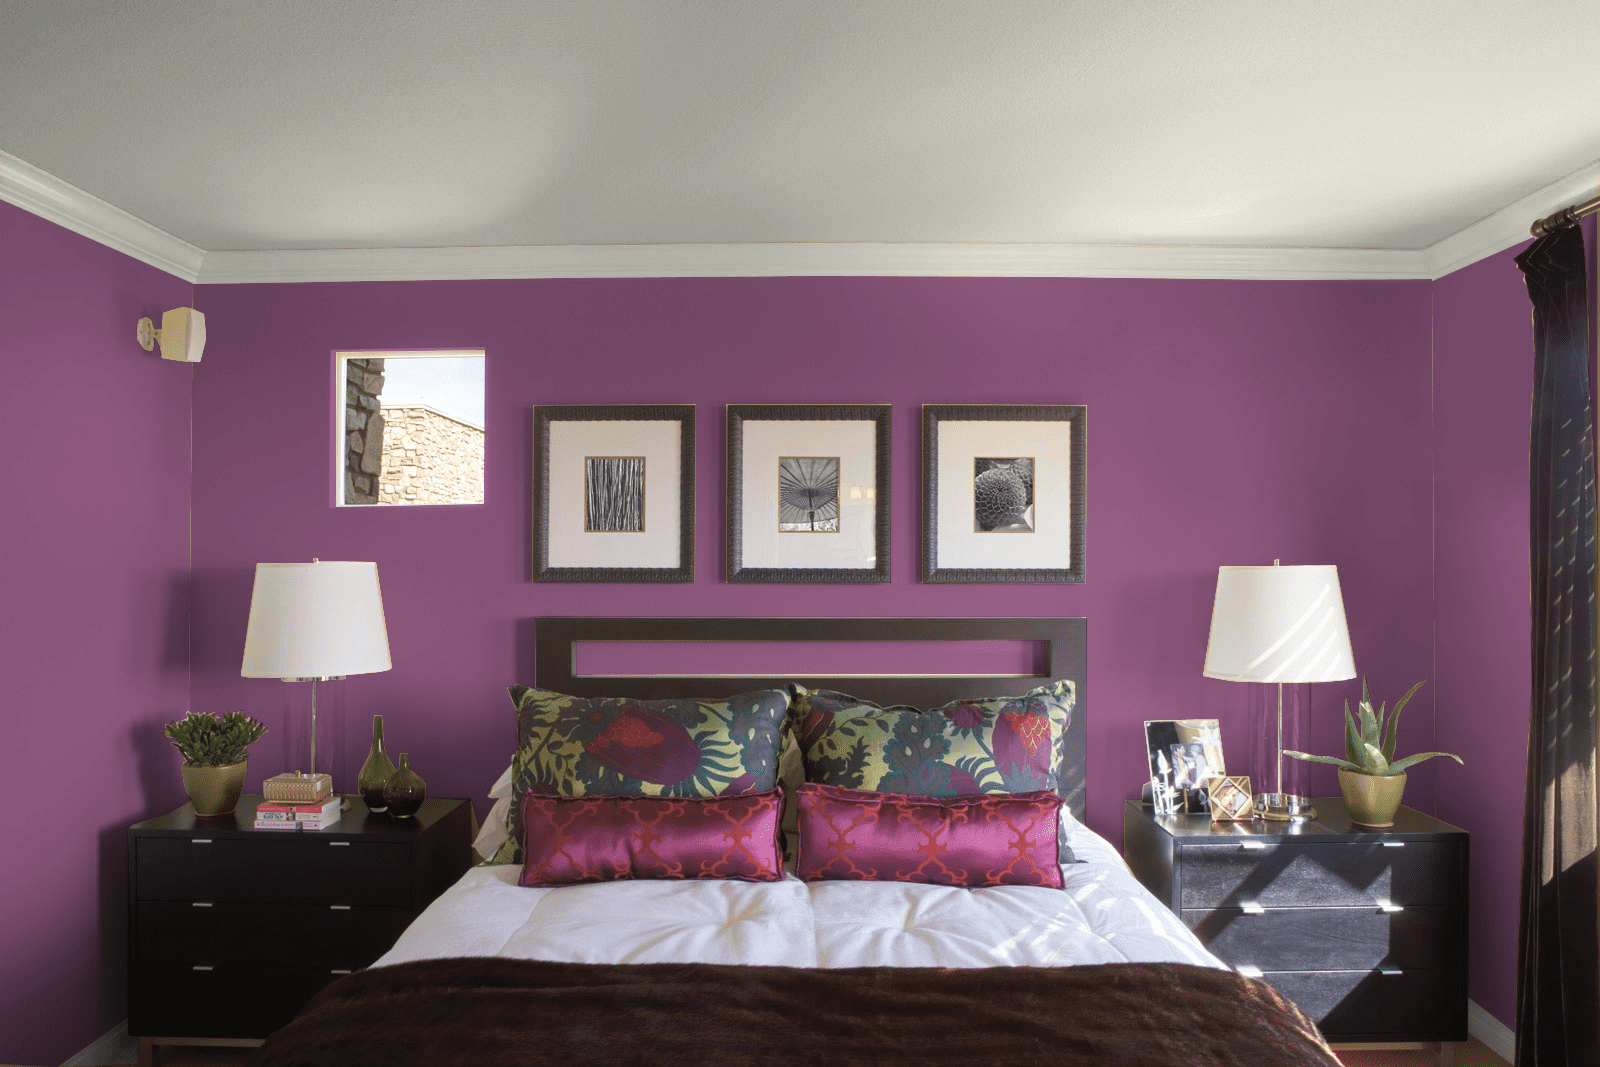 10 Great Pink and Purple Paint Colors for the Bedroom on girls bedroom, pink and purple doors, pink and purple lamp, pink purple polka dot twin comforter set, all pink bedroom, purple curtains for bedroom, pink and purple bed in a bag, pink and purple bedding, pink and purple sports, pink and purple tv, pink and purple lighting, green bedroom, pink and purple tulips, pink and purple food, pink and purple mattresses, pink and purple clocks, pink and purple polka dots, turquoise bedroom, pink and purple walls, pink and purple hair,